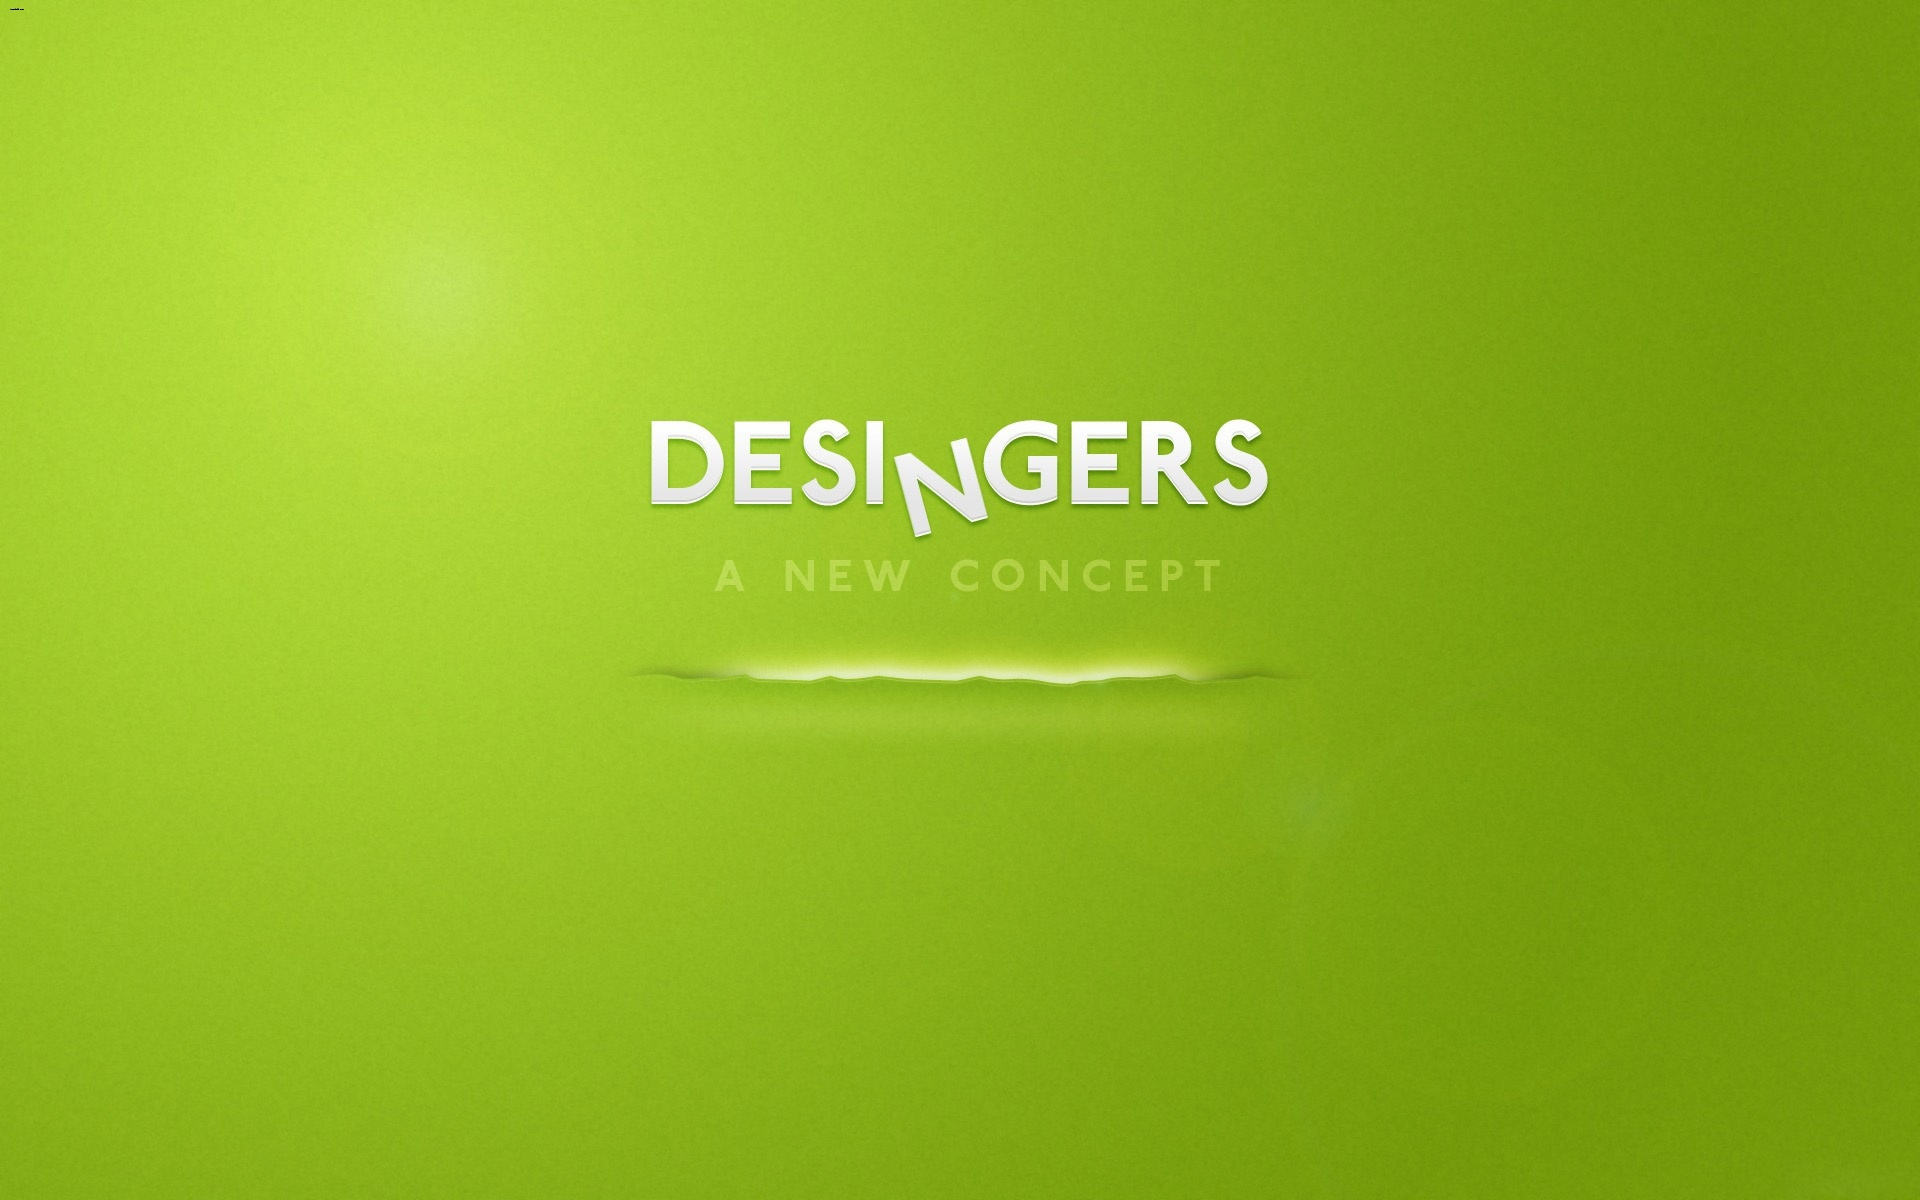 Image: Designers Wallpapers And Stock Photos. «